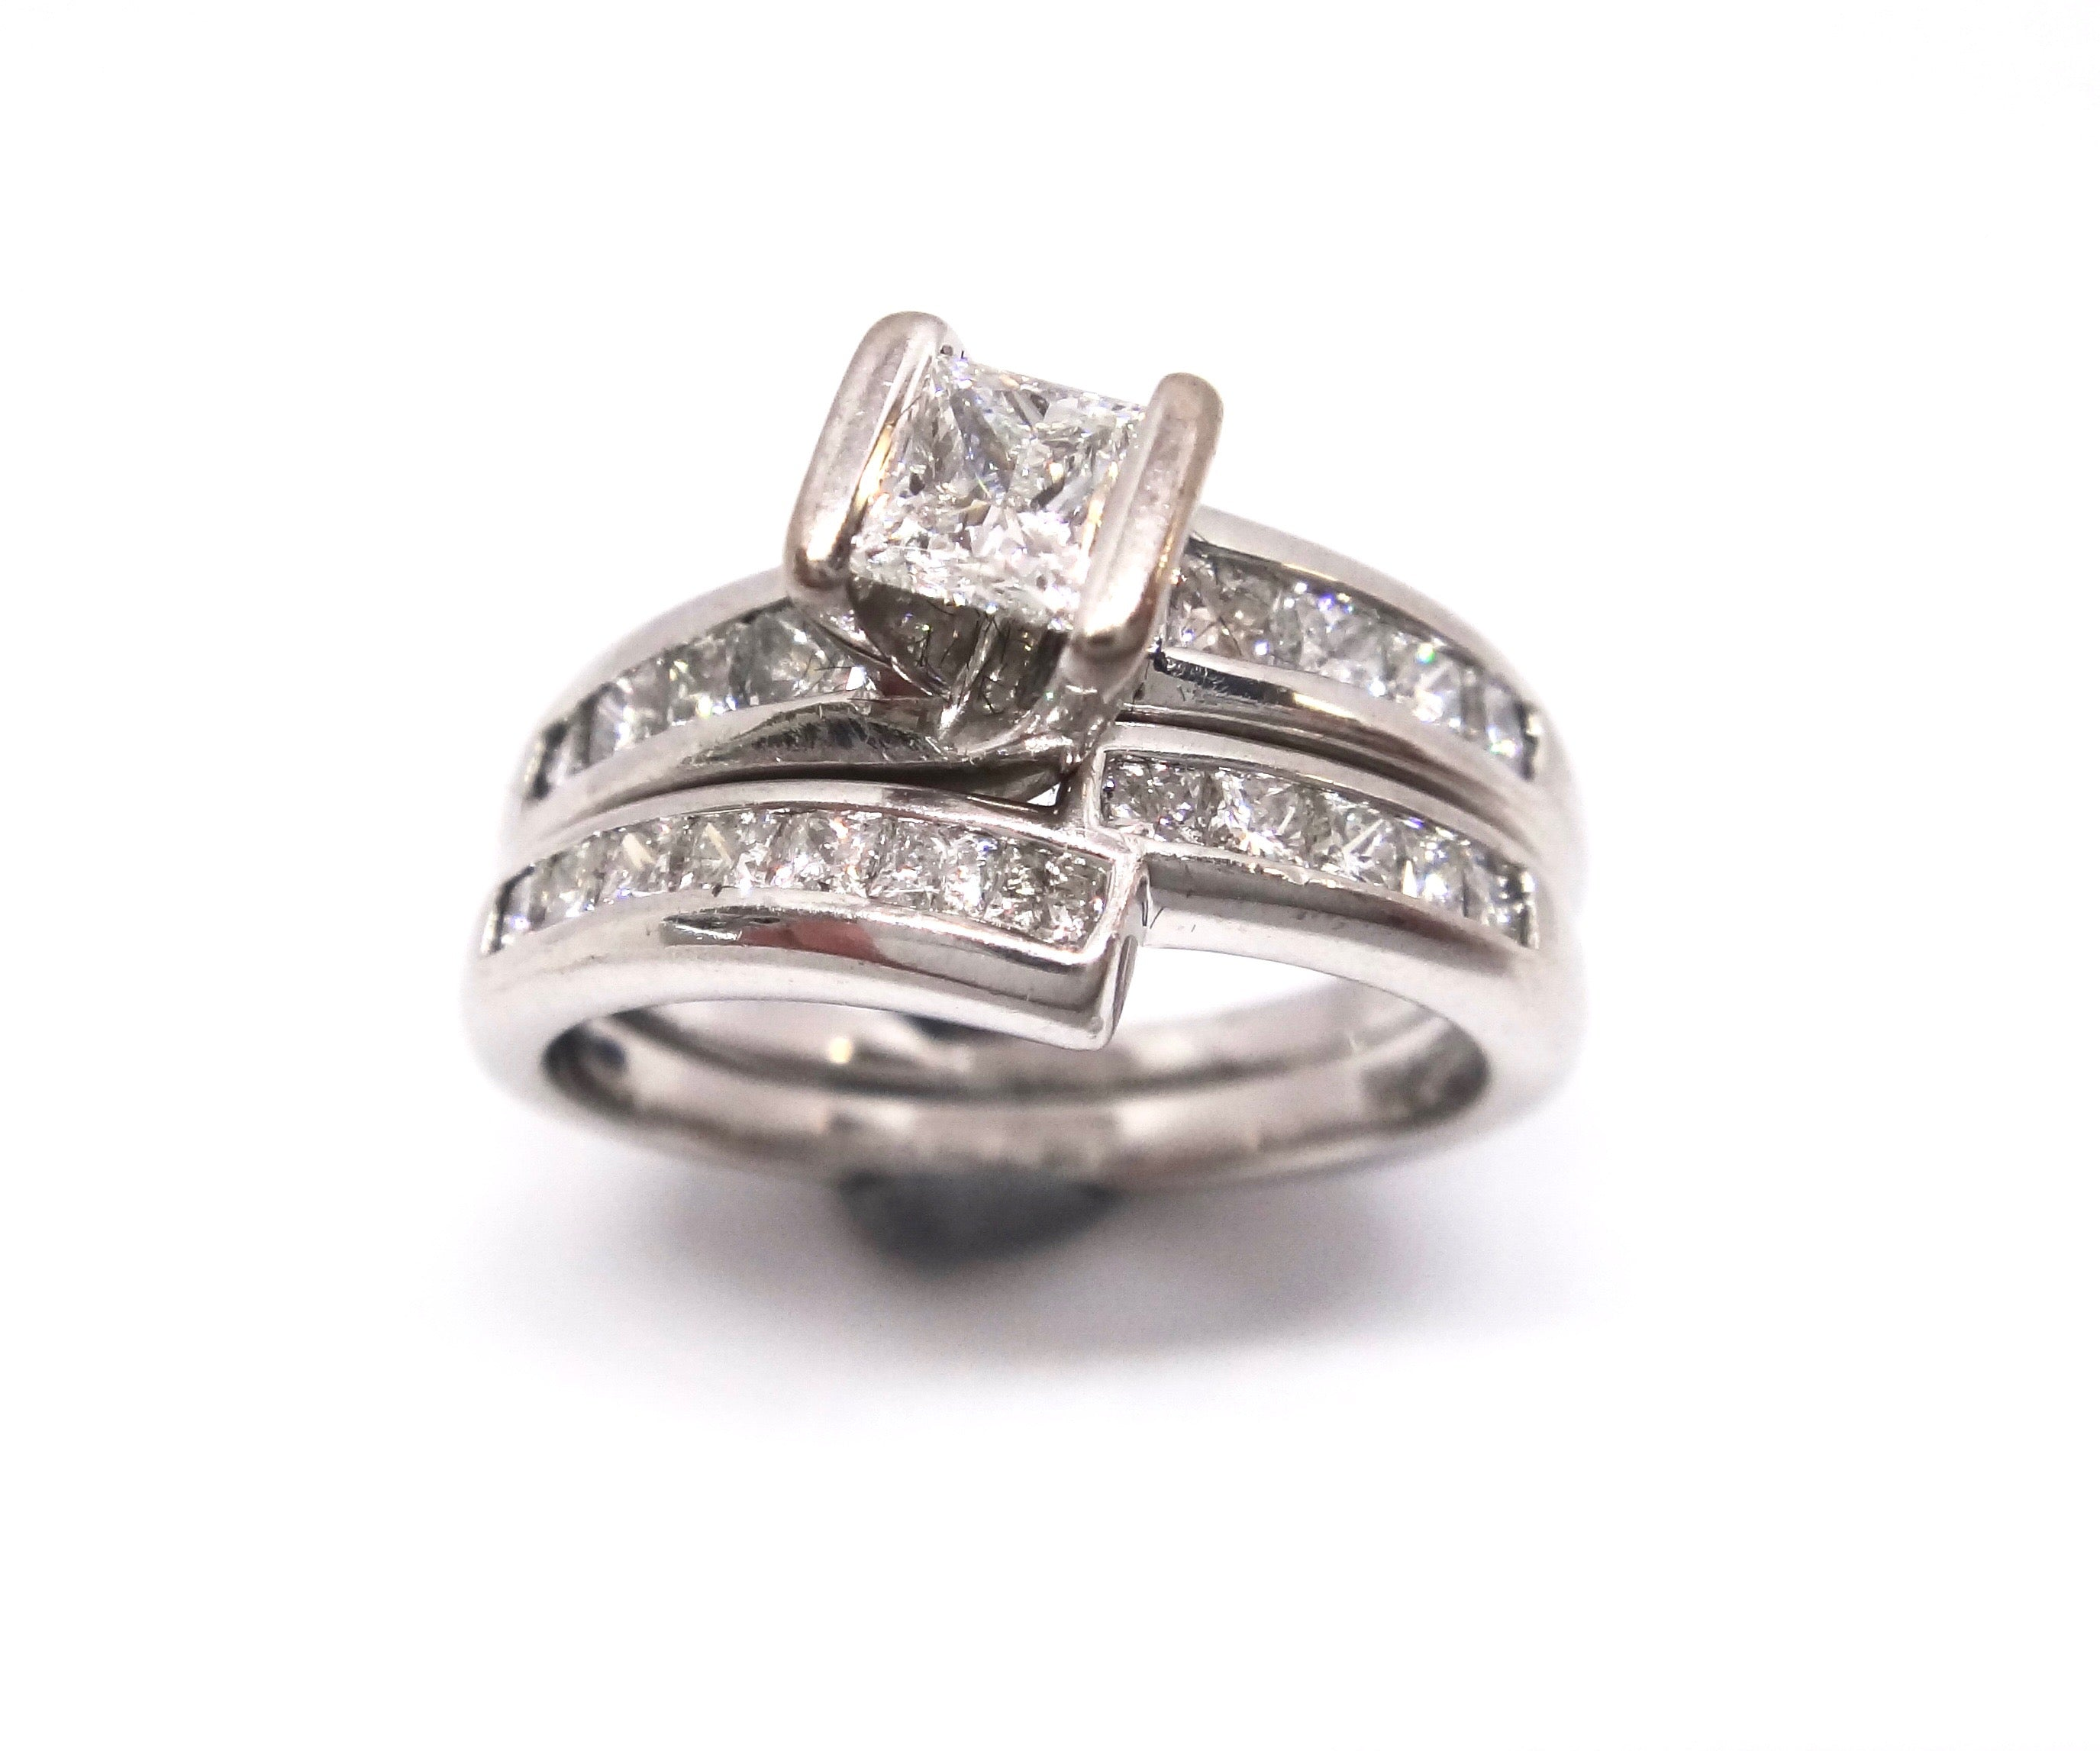 18CT White GOLD & Princess Cut DIAMOND Engagement/Wedding Ring Set